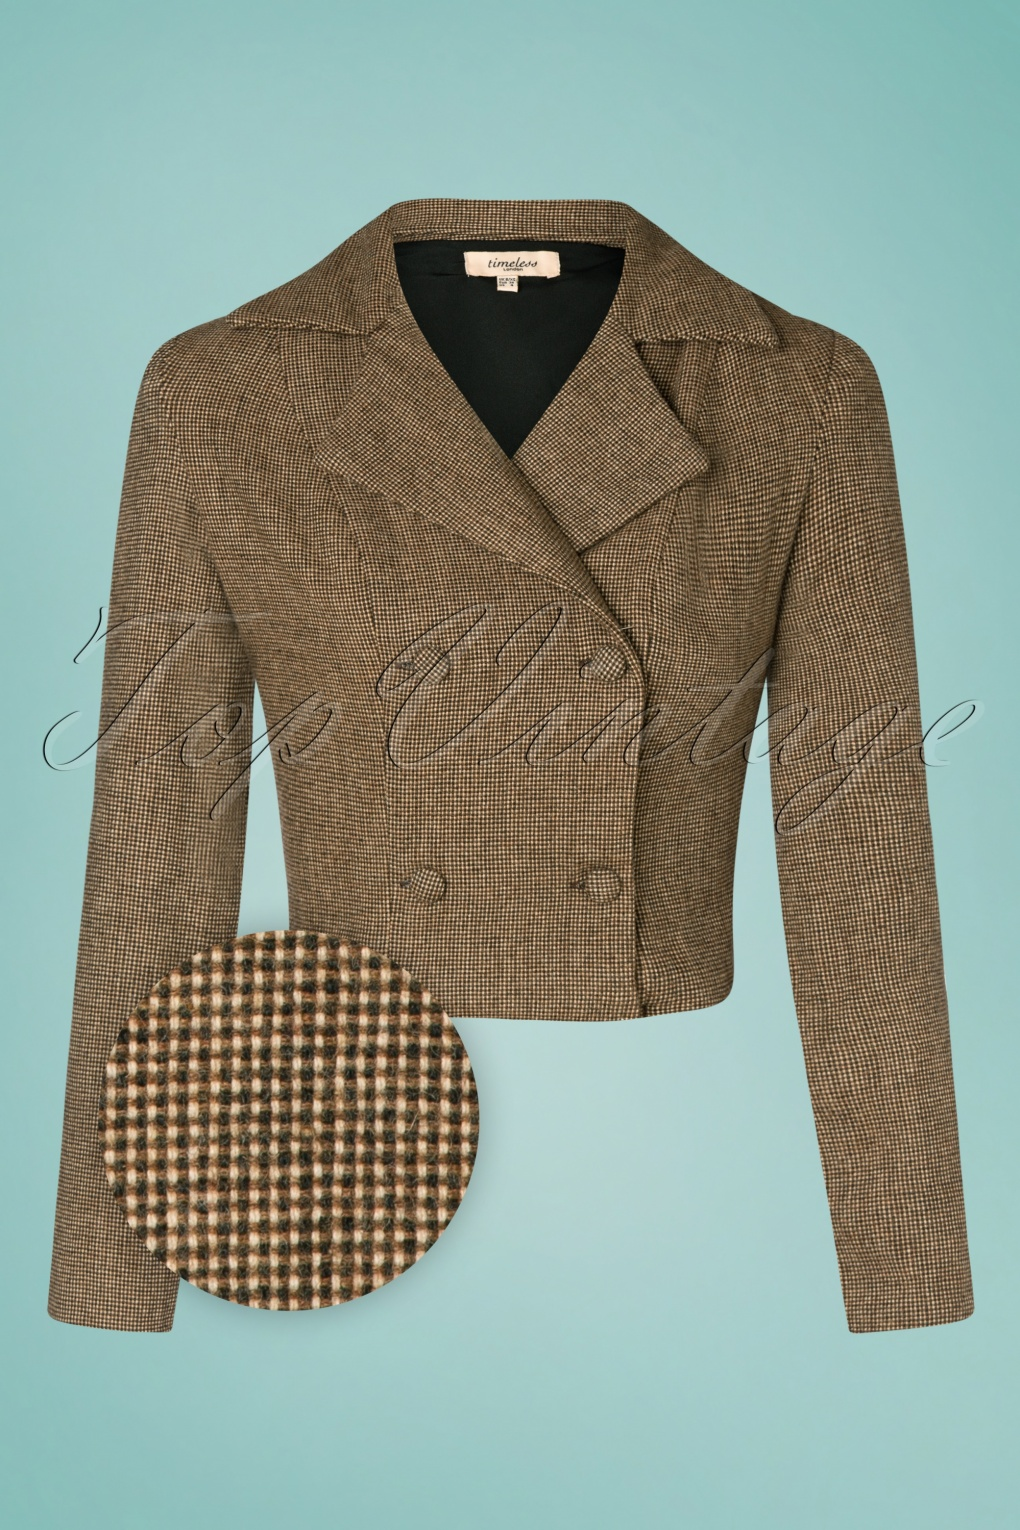 Vintage Coats & Jackets | Retro Coats and Jackets 40s Celia Cropped Wool Jacket in Brown £72.43 AT vintagedancer.com